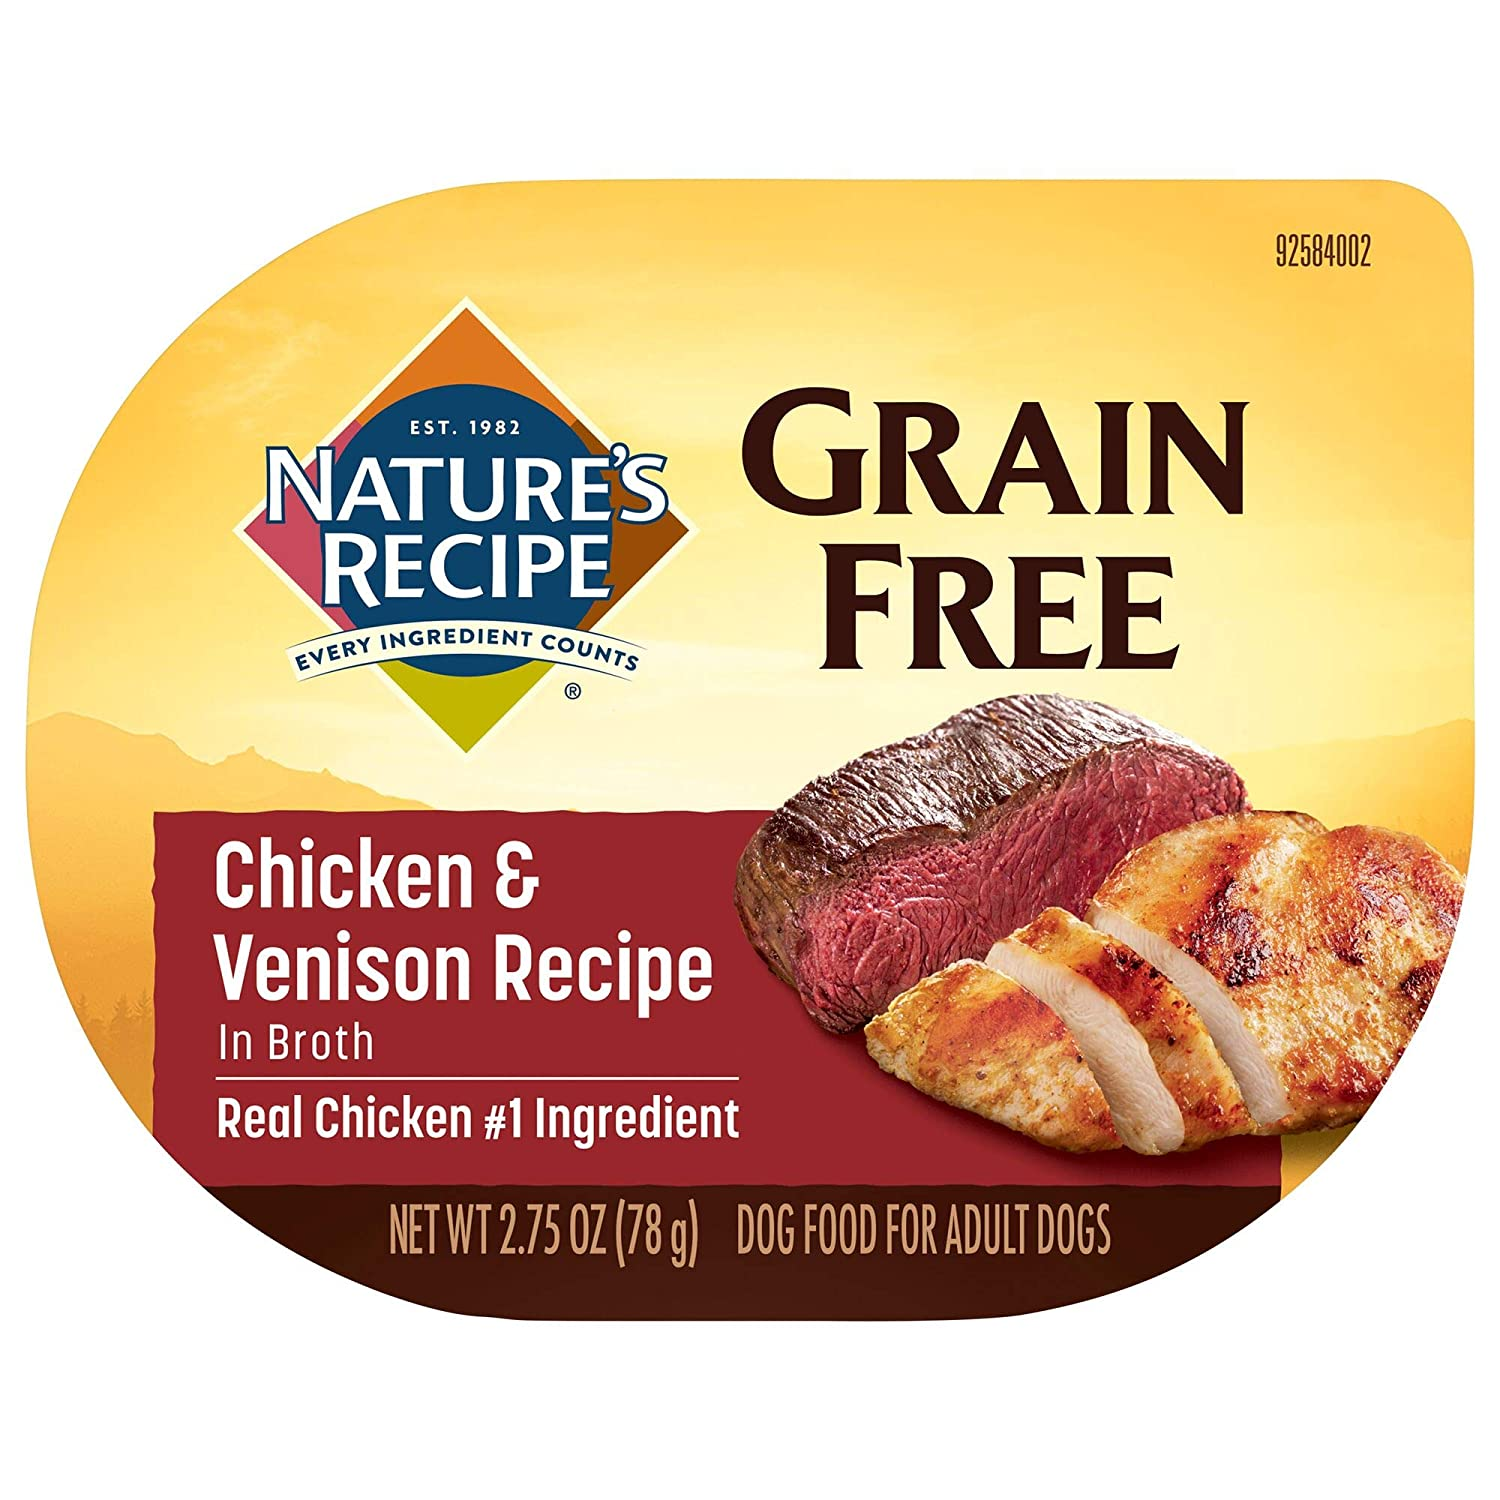 Nature's Recipe Easy to Digest Wet Dog Food, Chicken & Venison in Broth Recipe, 2.75 Ounce Cup (Pack of 12), Grain Free (Packaging May Vary)